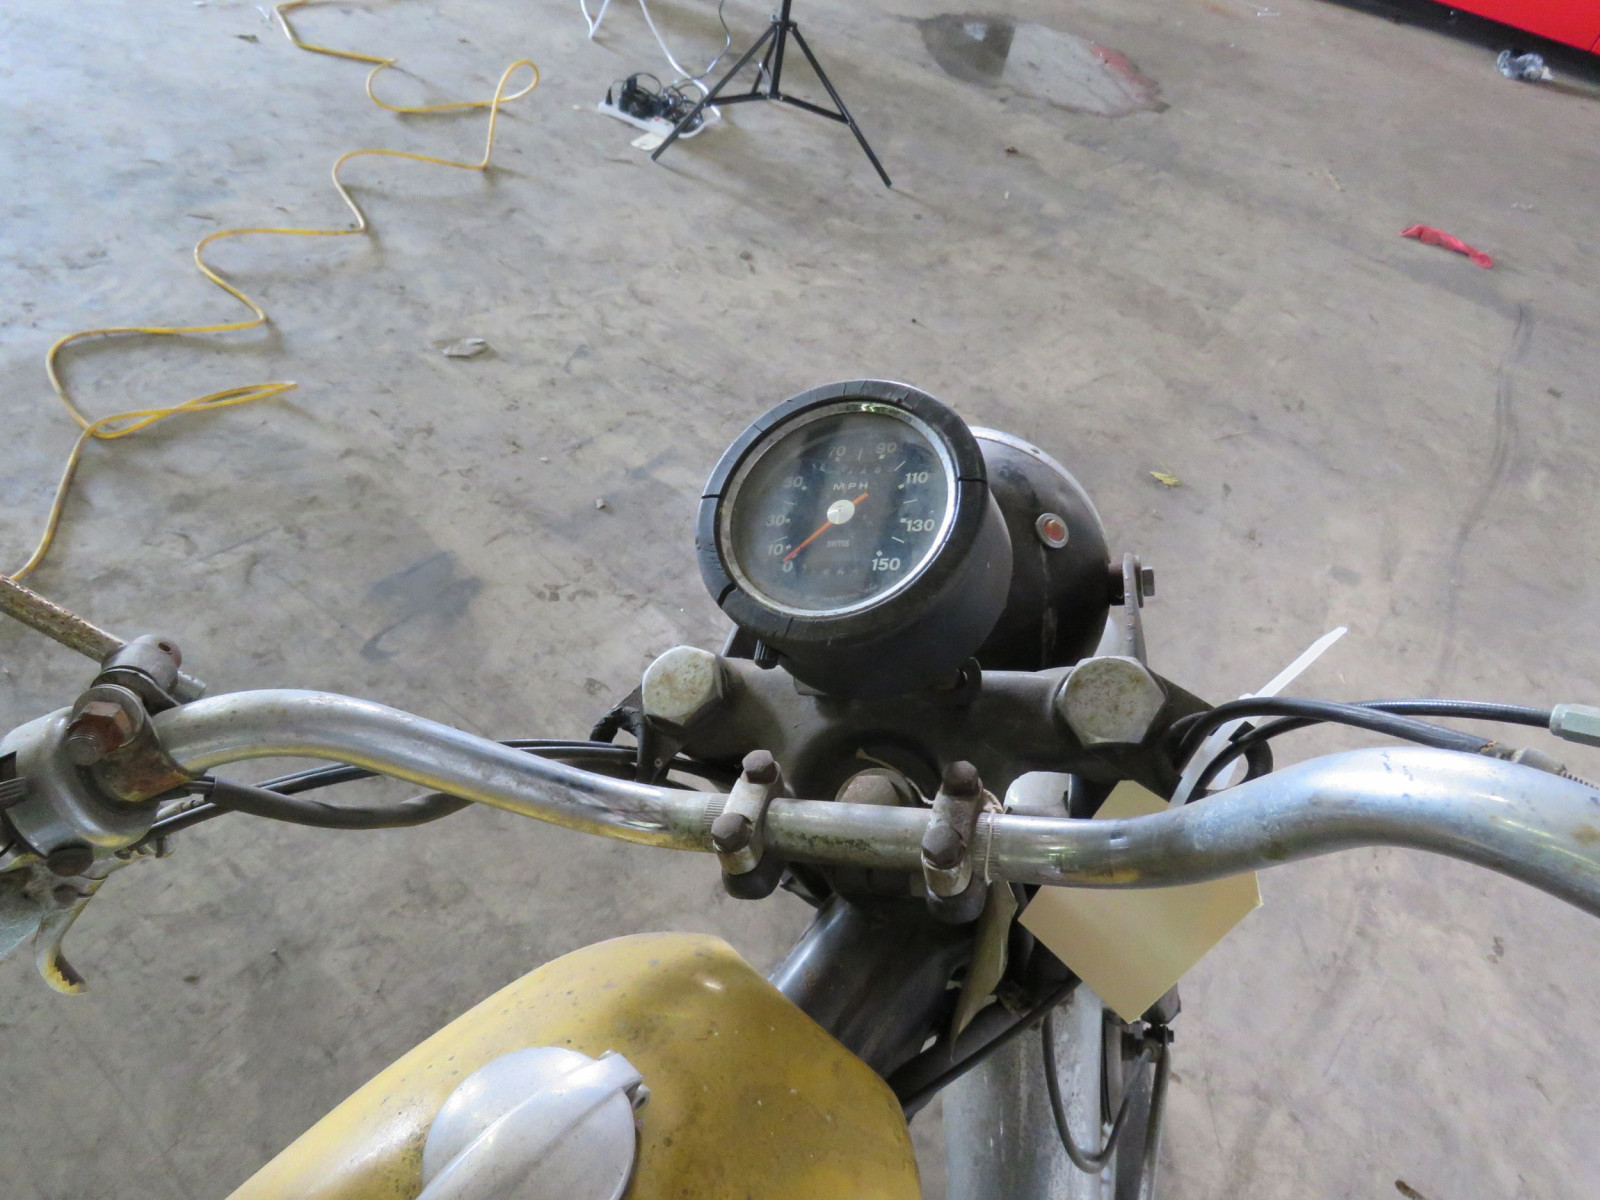 1970 BSA B44 Victor Special Motorcycle - Image 3